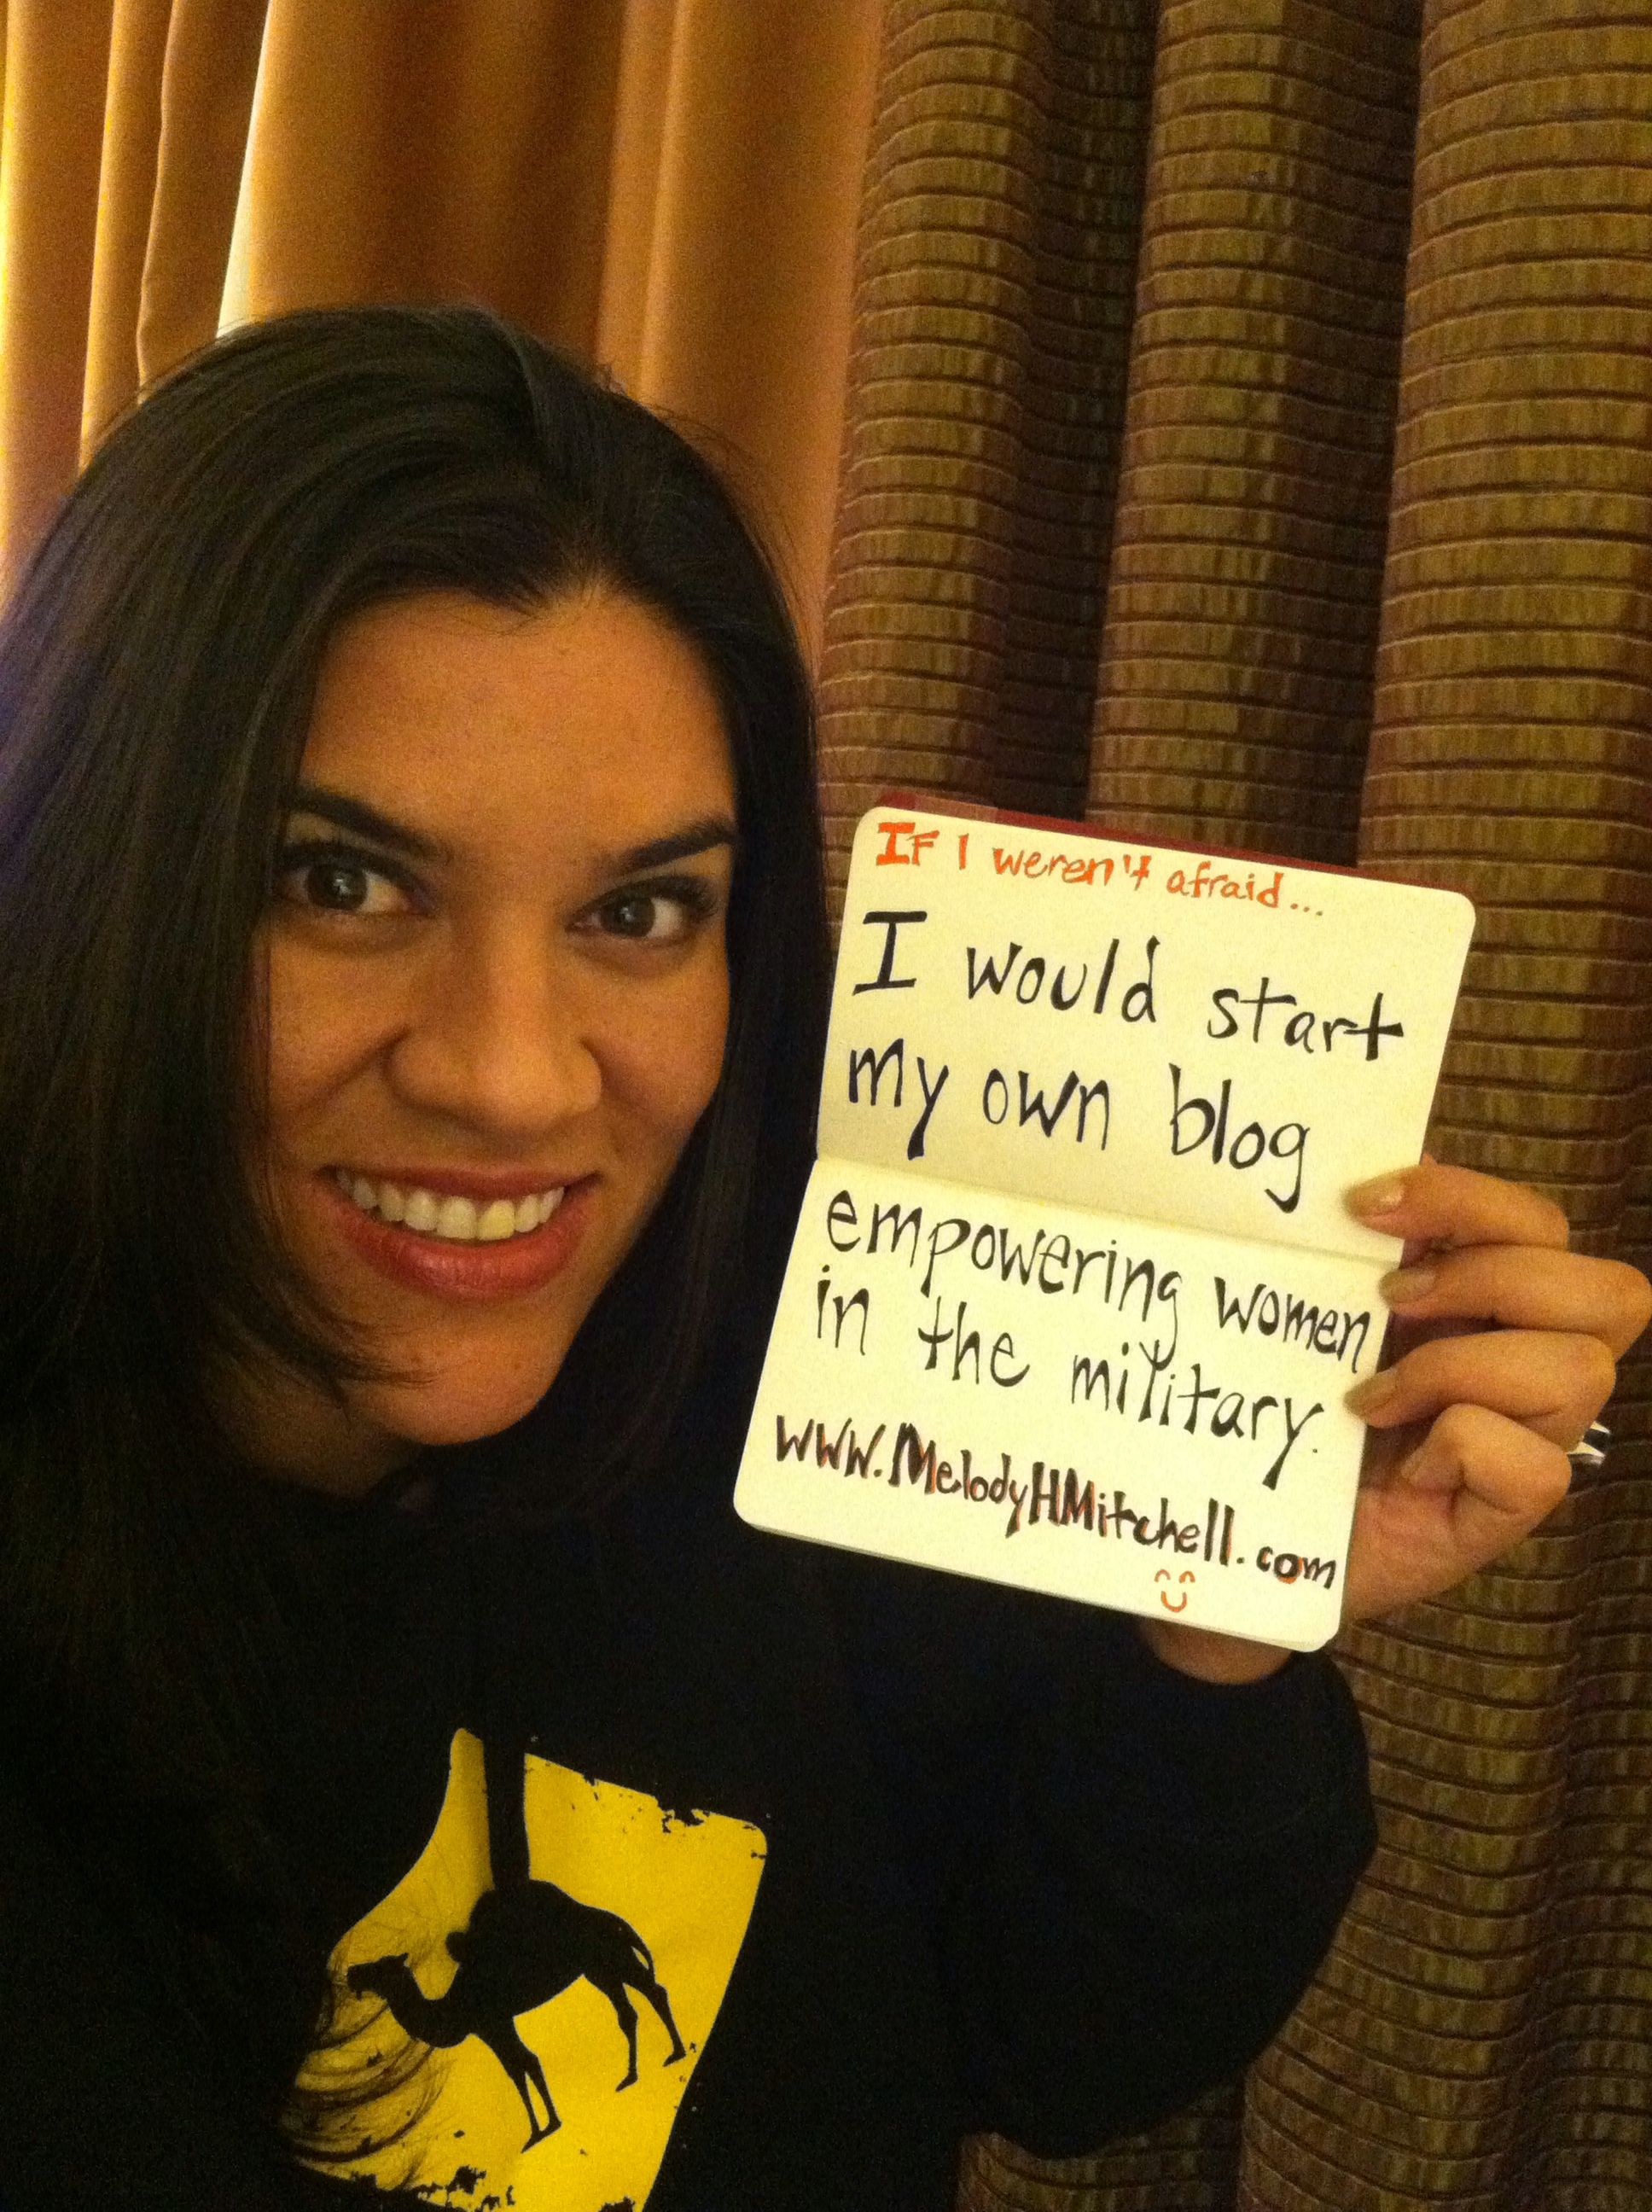 If I weren't afraid I would start my own blog empowering women in the military...